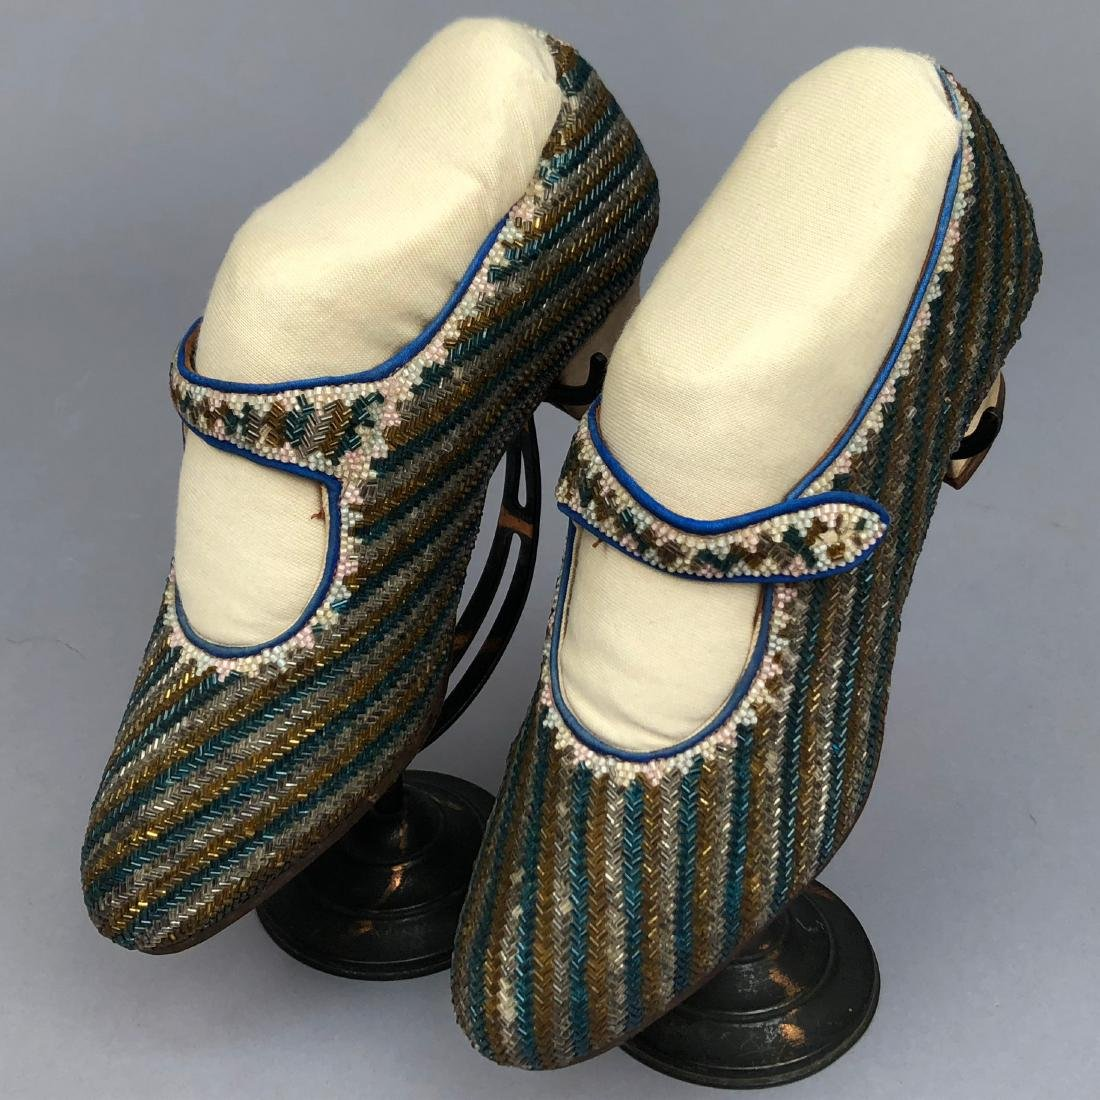 BEADED PUMPS with ANKLE STRAP, c. 1925